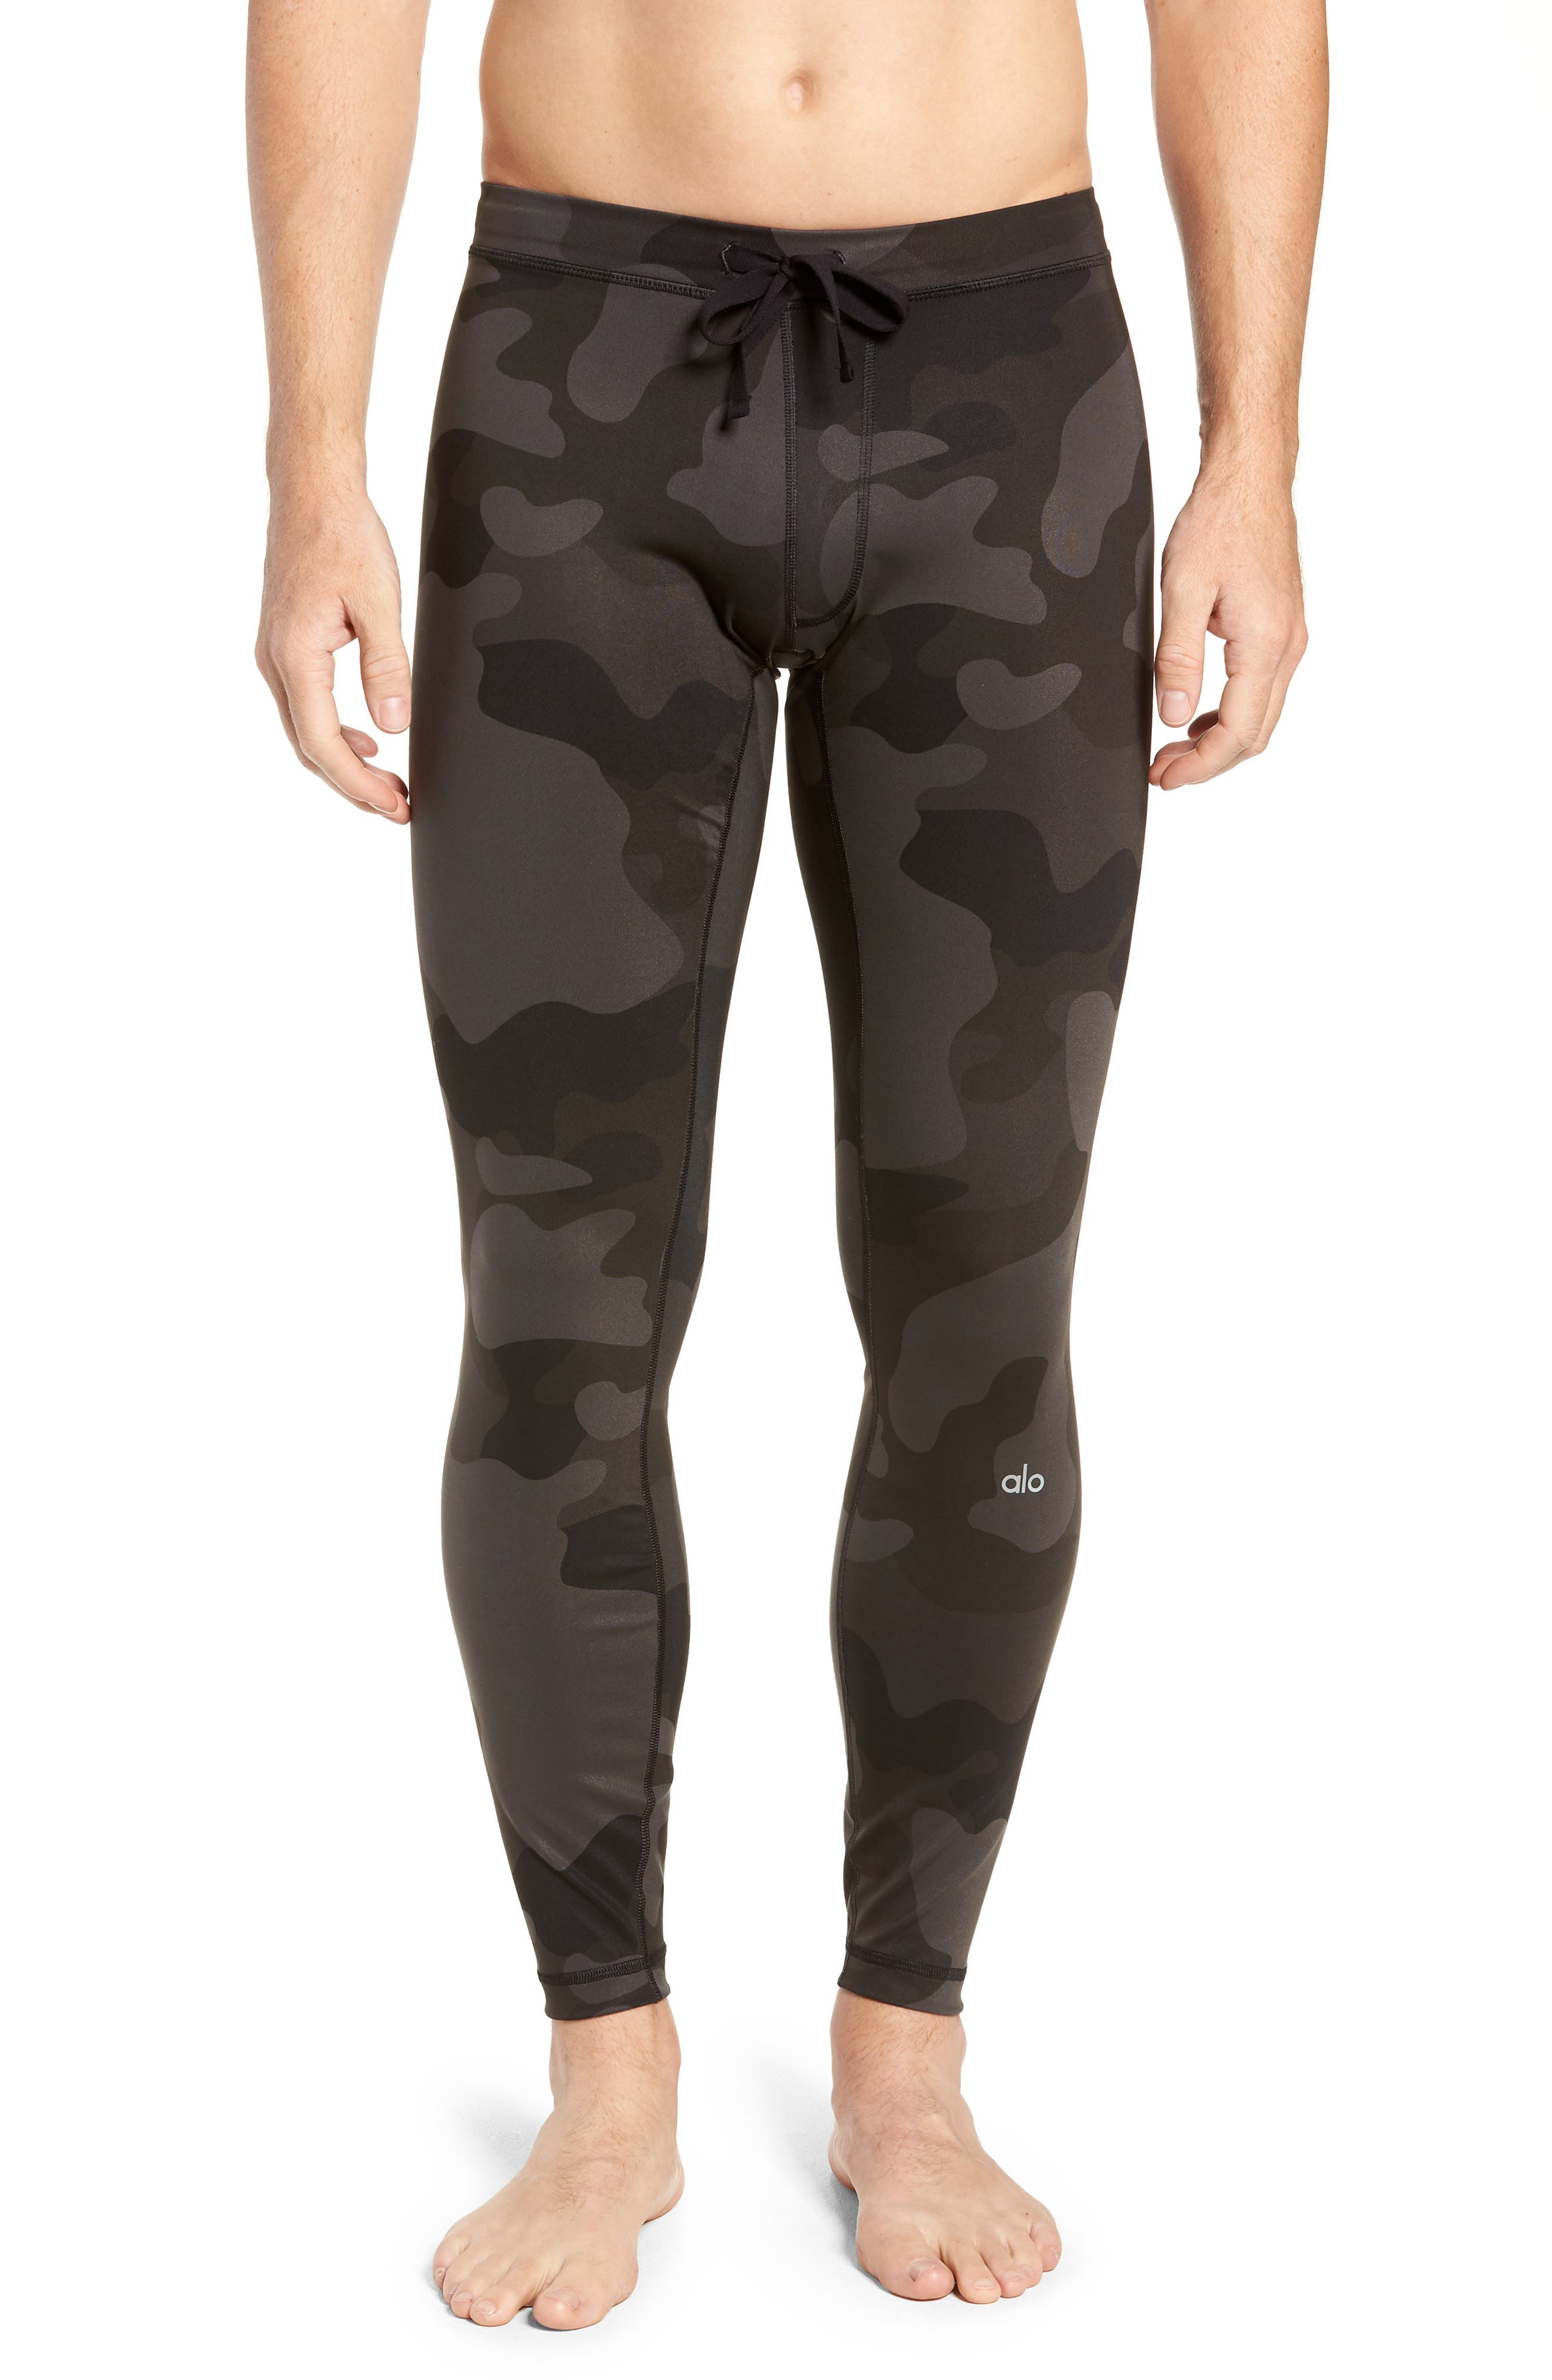 Warror Compression Tights,                             Main thumbnail 1, color,                             ONYX CAMO